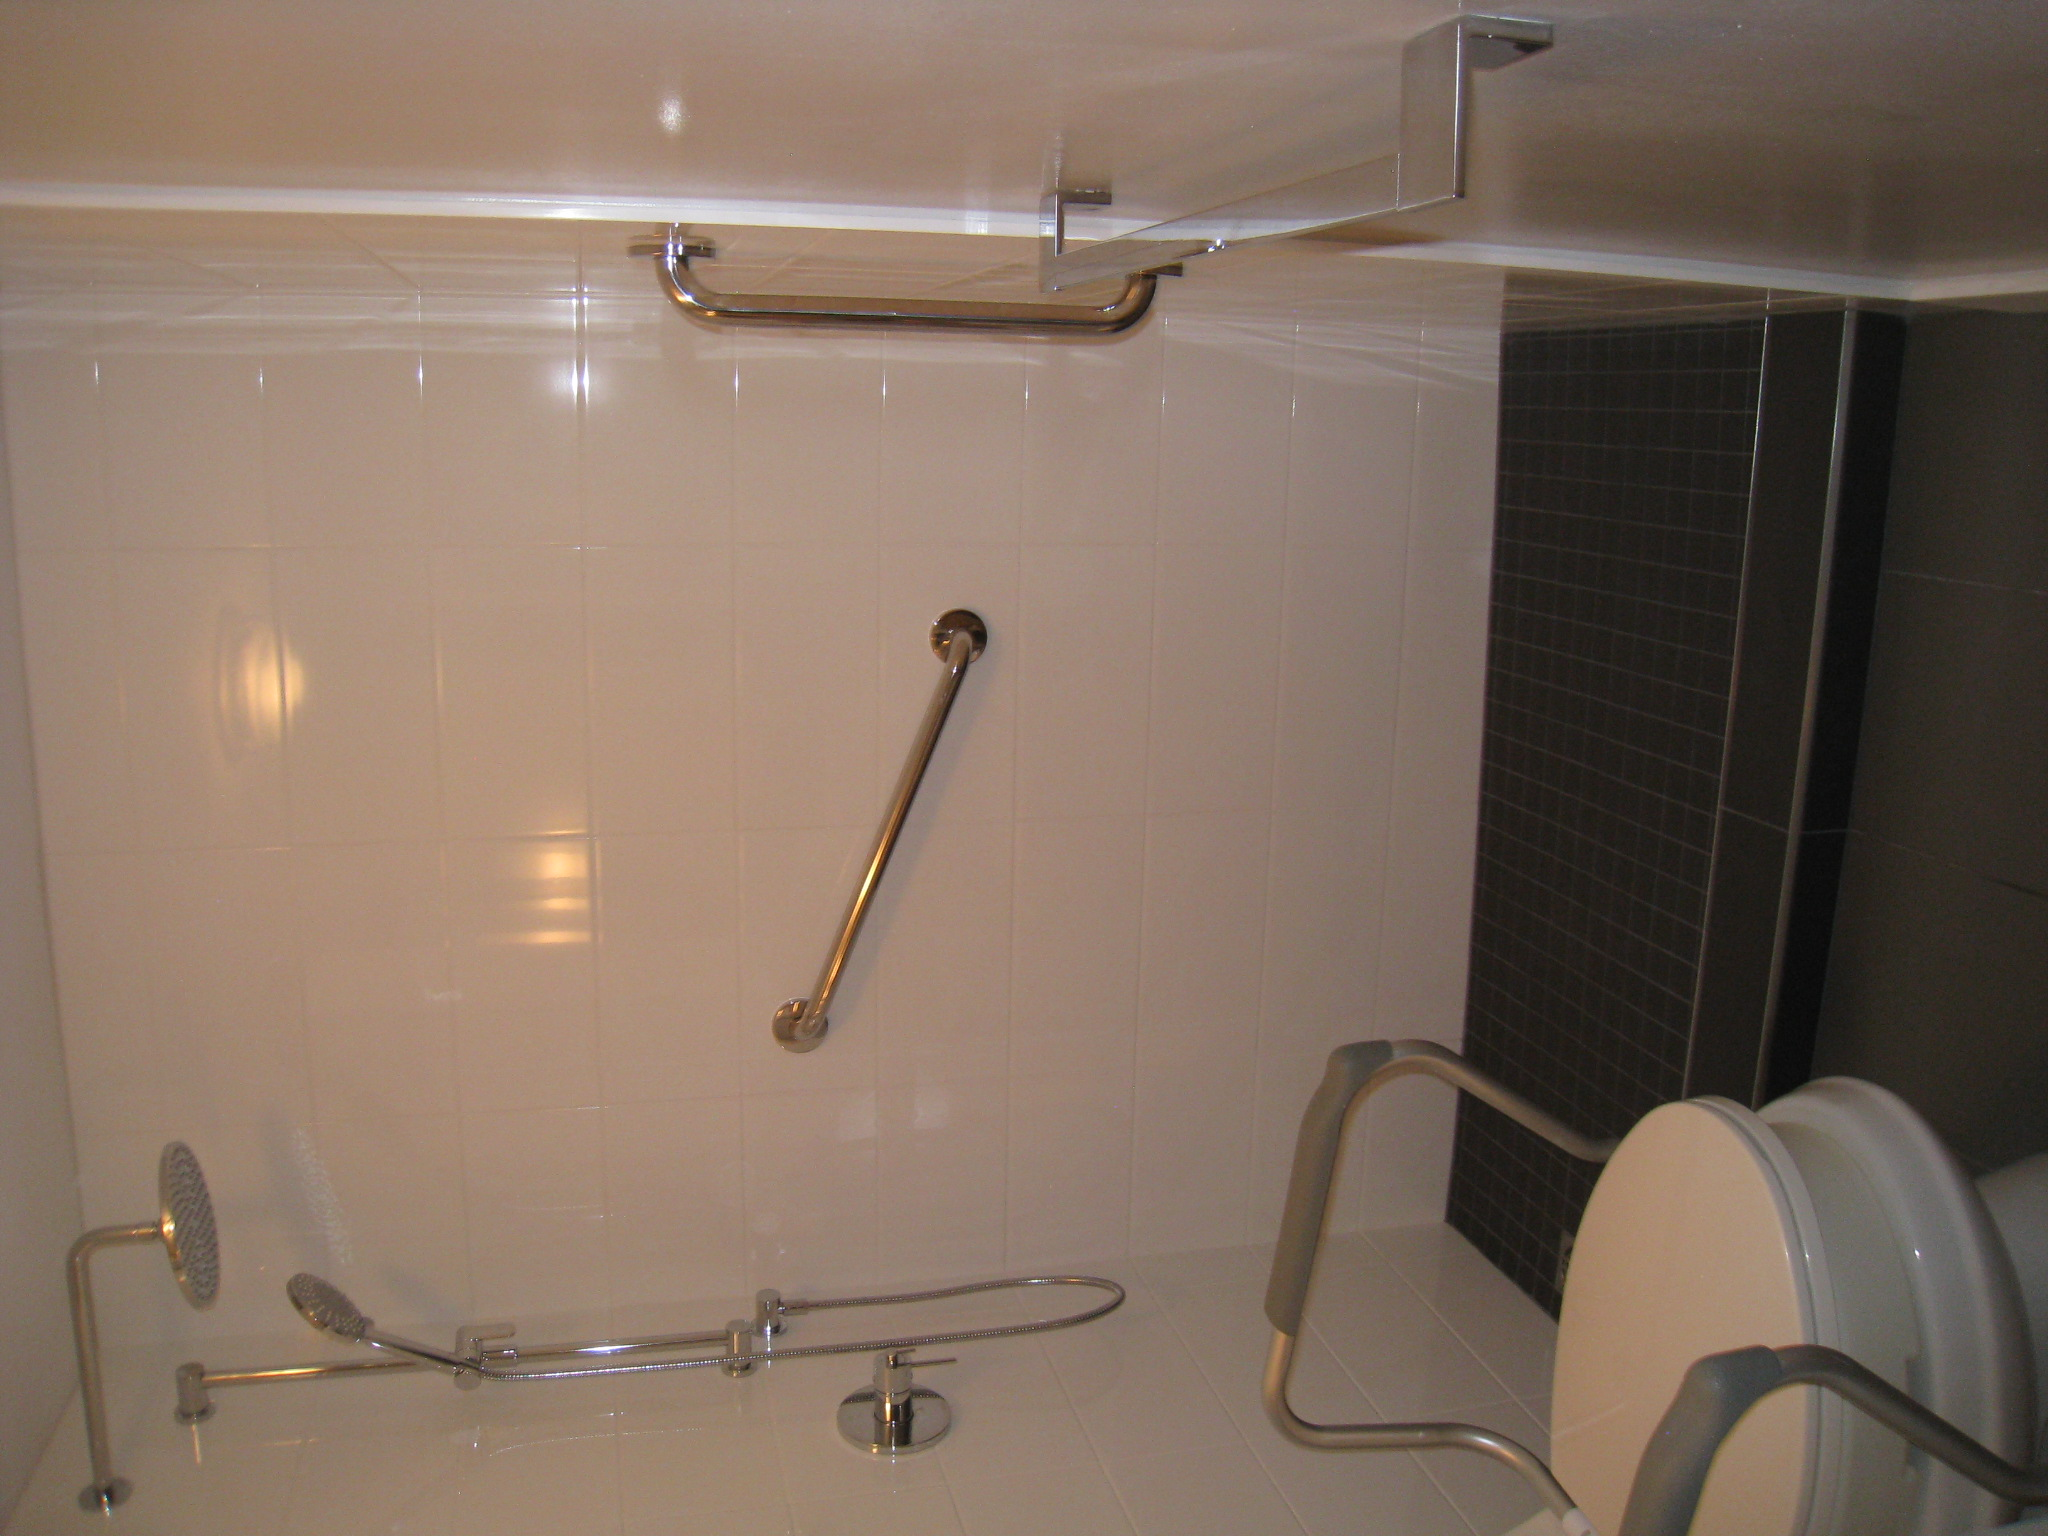 Converted bathtub to walk-in shower